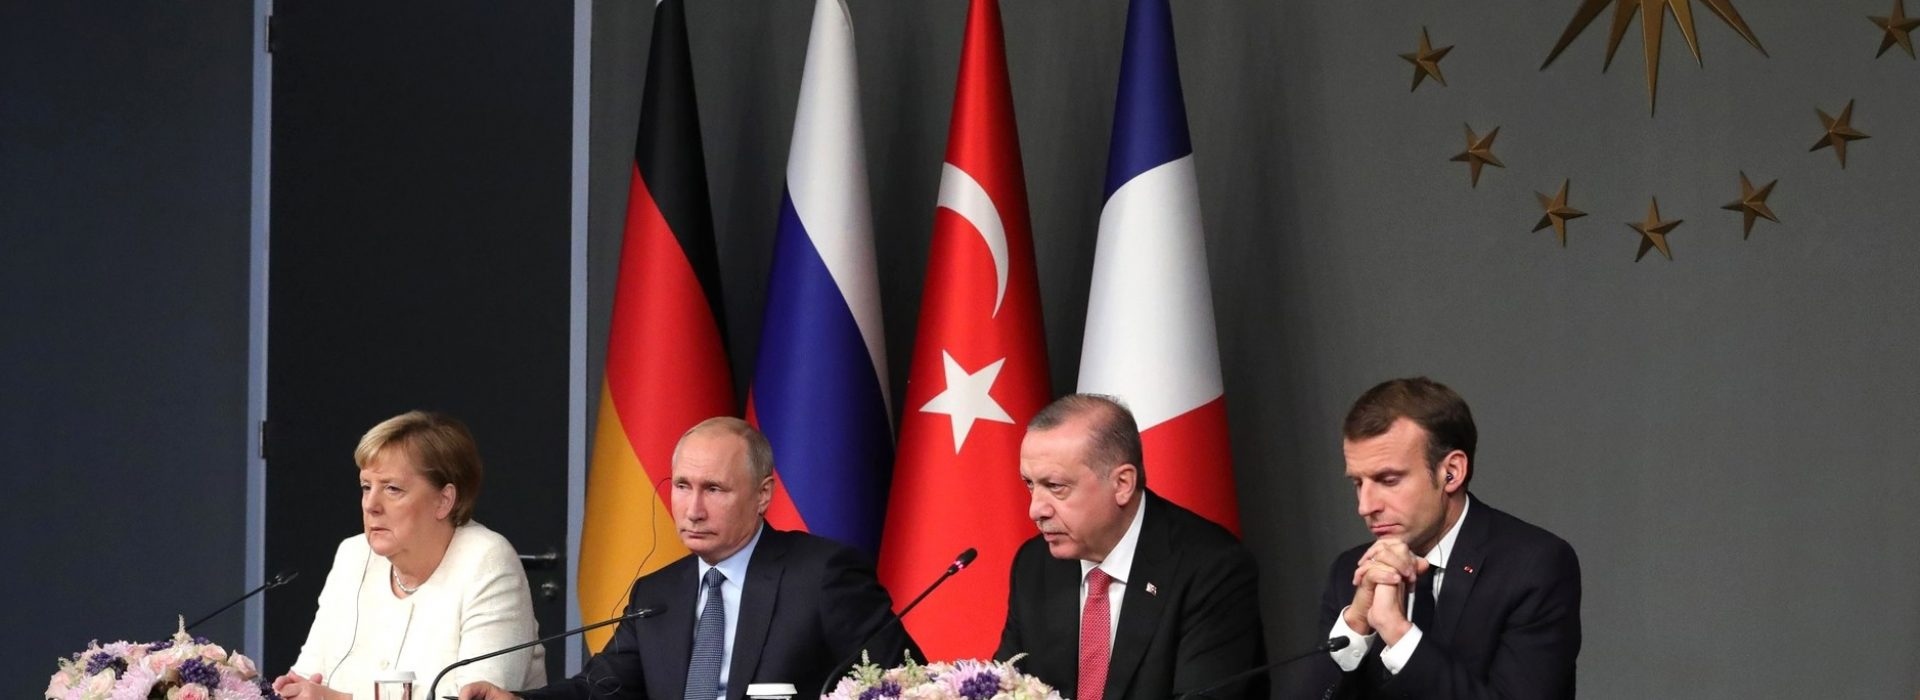 00Merkel,_Putin,_Erdoğan_and_Macron_during_the_joint_press_release